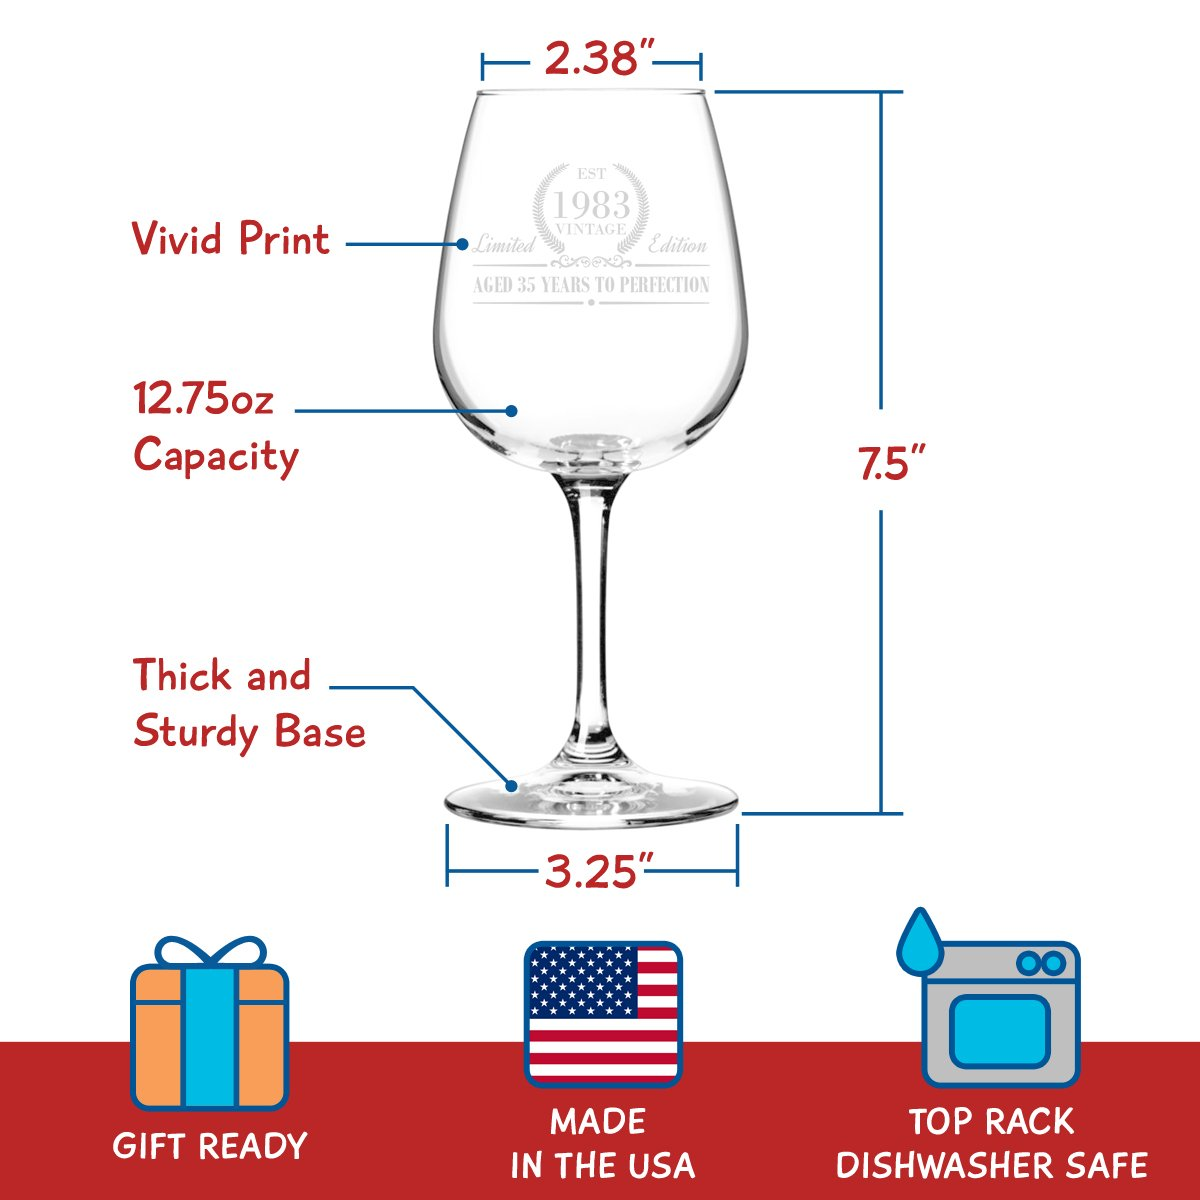 1983 Vintage Edition Birthday Wine Glass for Men and Women (35th Anniversary) 12 oz, Elegant Happy Birthday Wine Glasses for Red or White Wine | Classic Birthday Gift, Reunion Gift for Him or Her by DU VINO (Image #4)